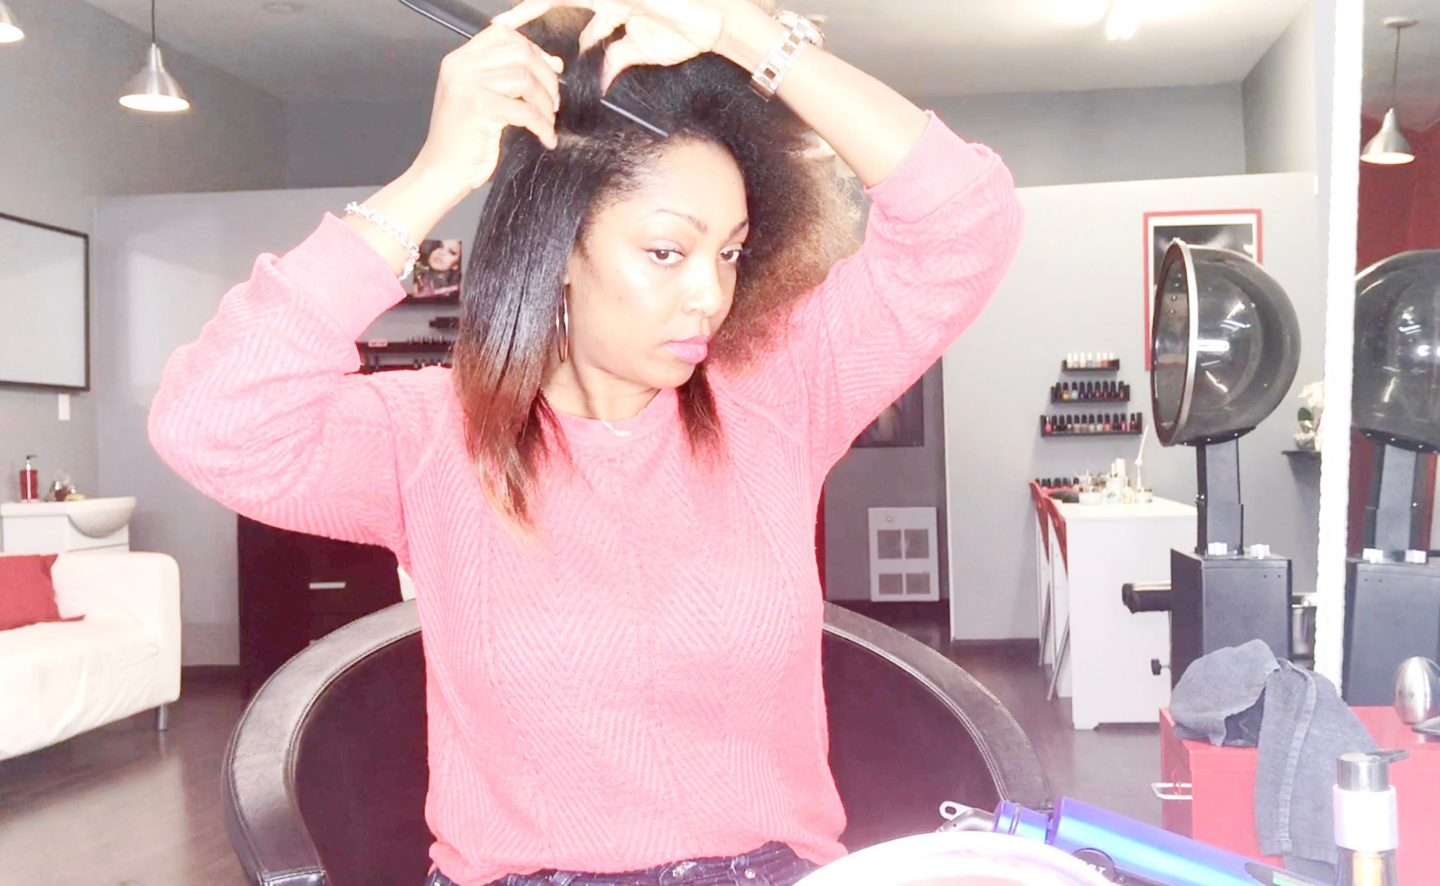 SILK PRESS ON MY NATURAL HAIR (video)